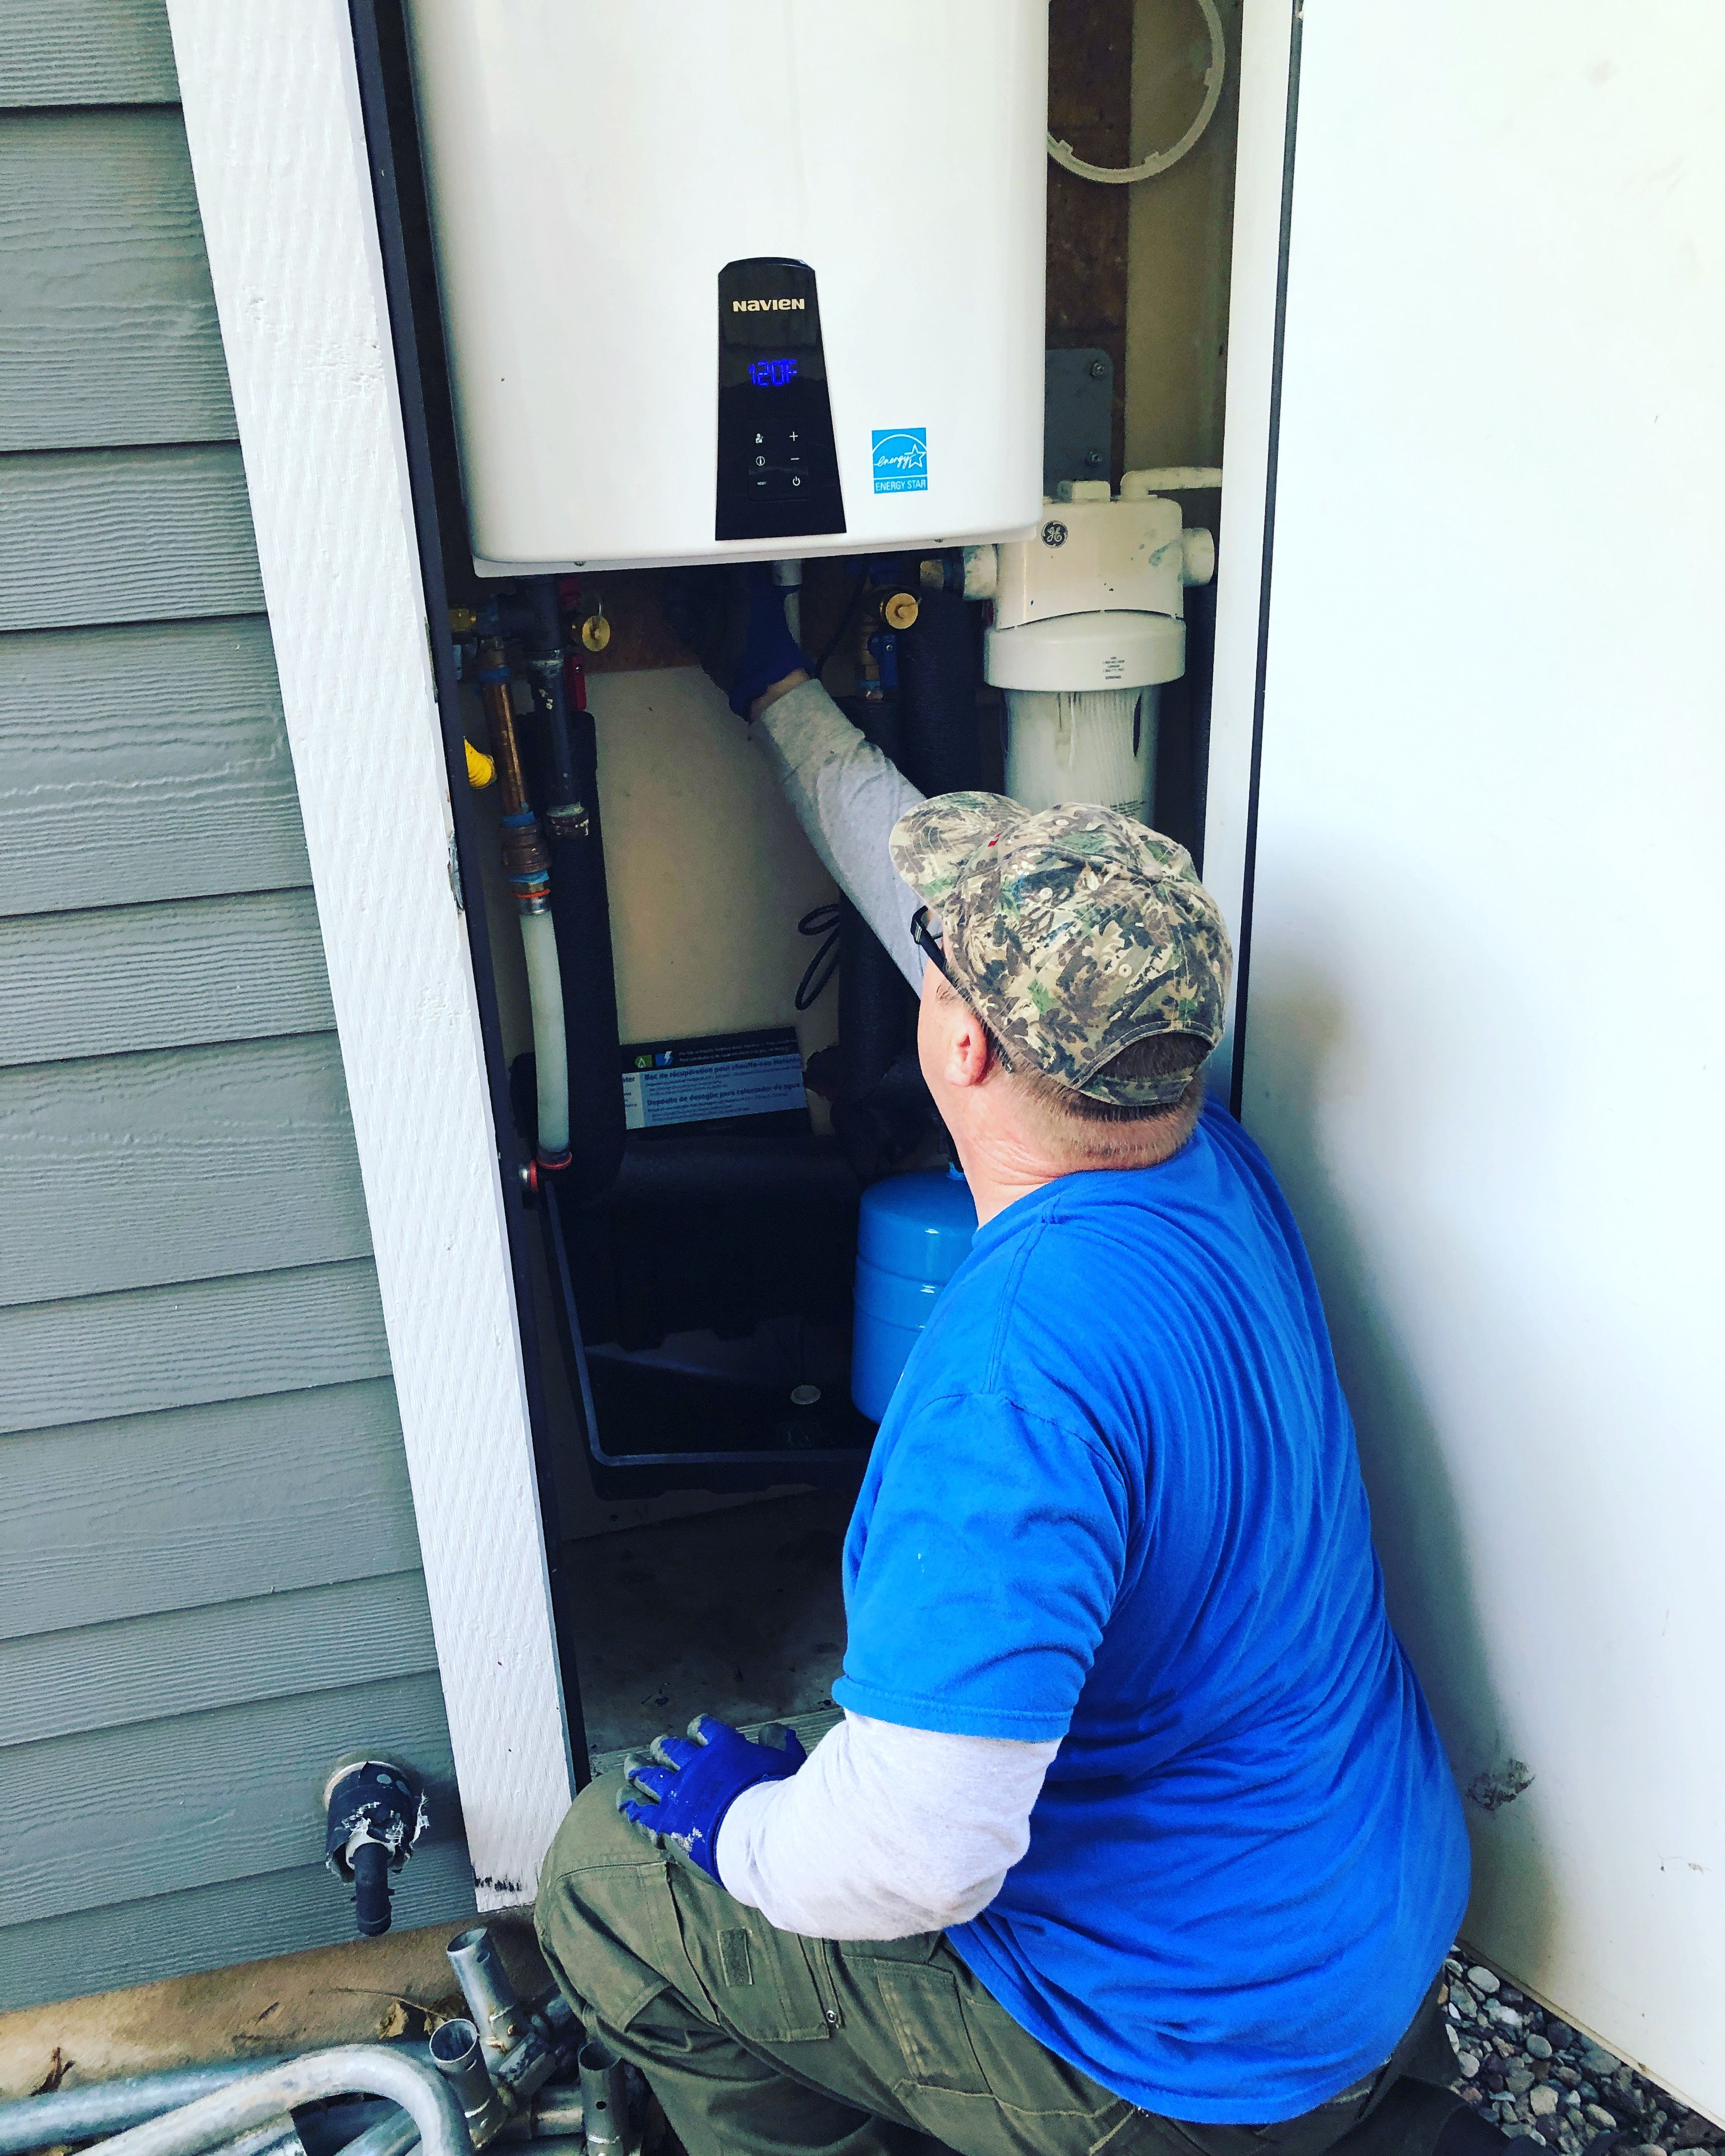 You need a tankless water heater luckily for you we are